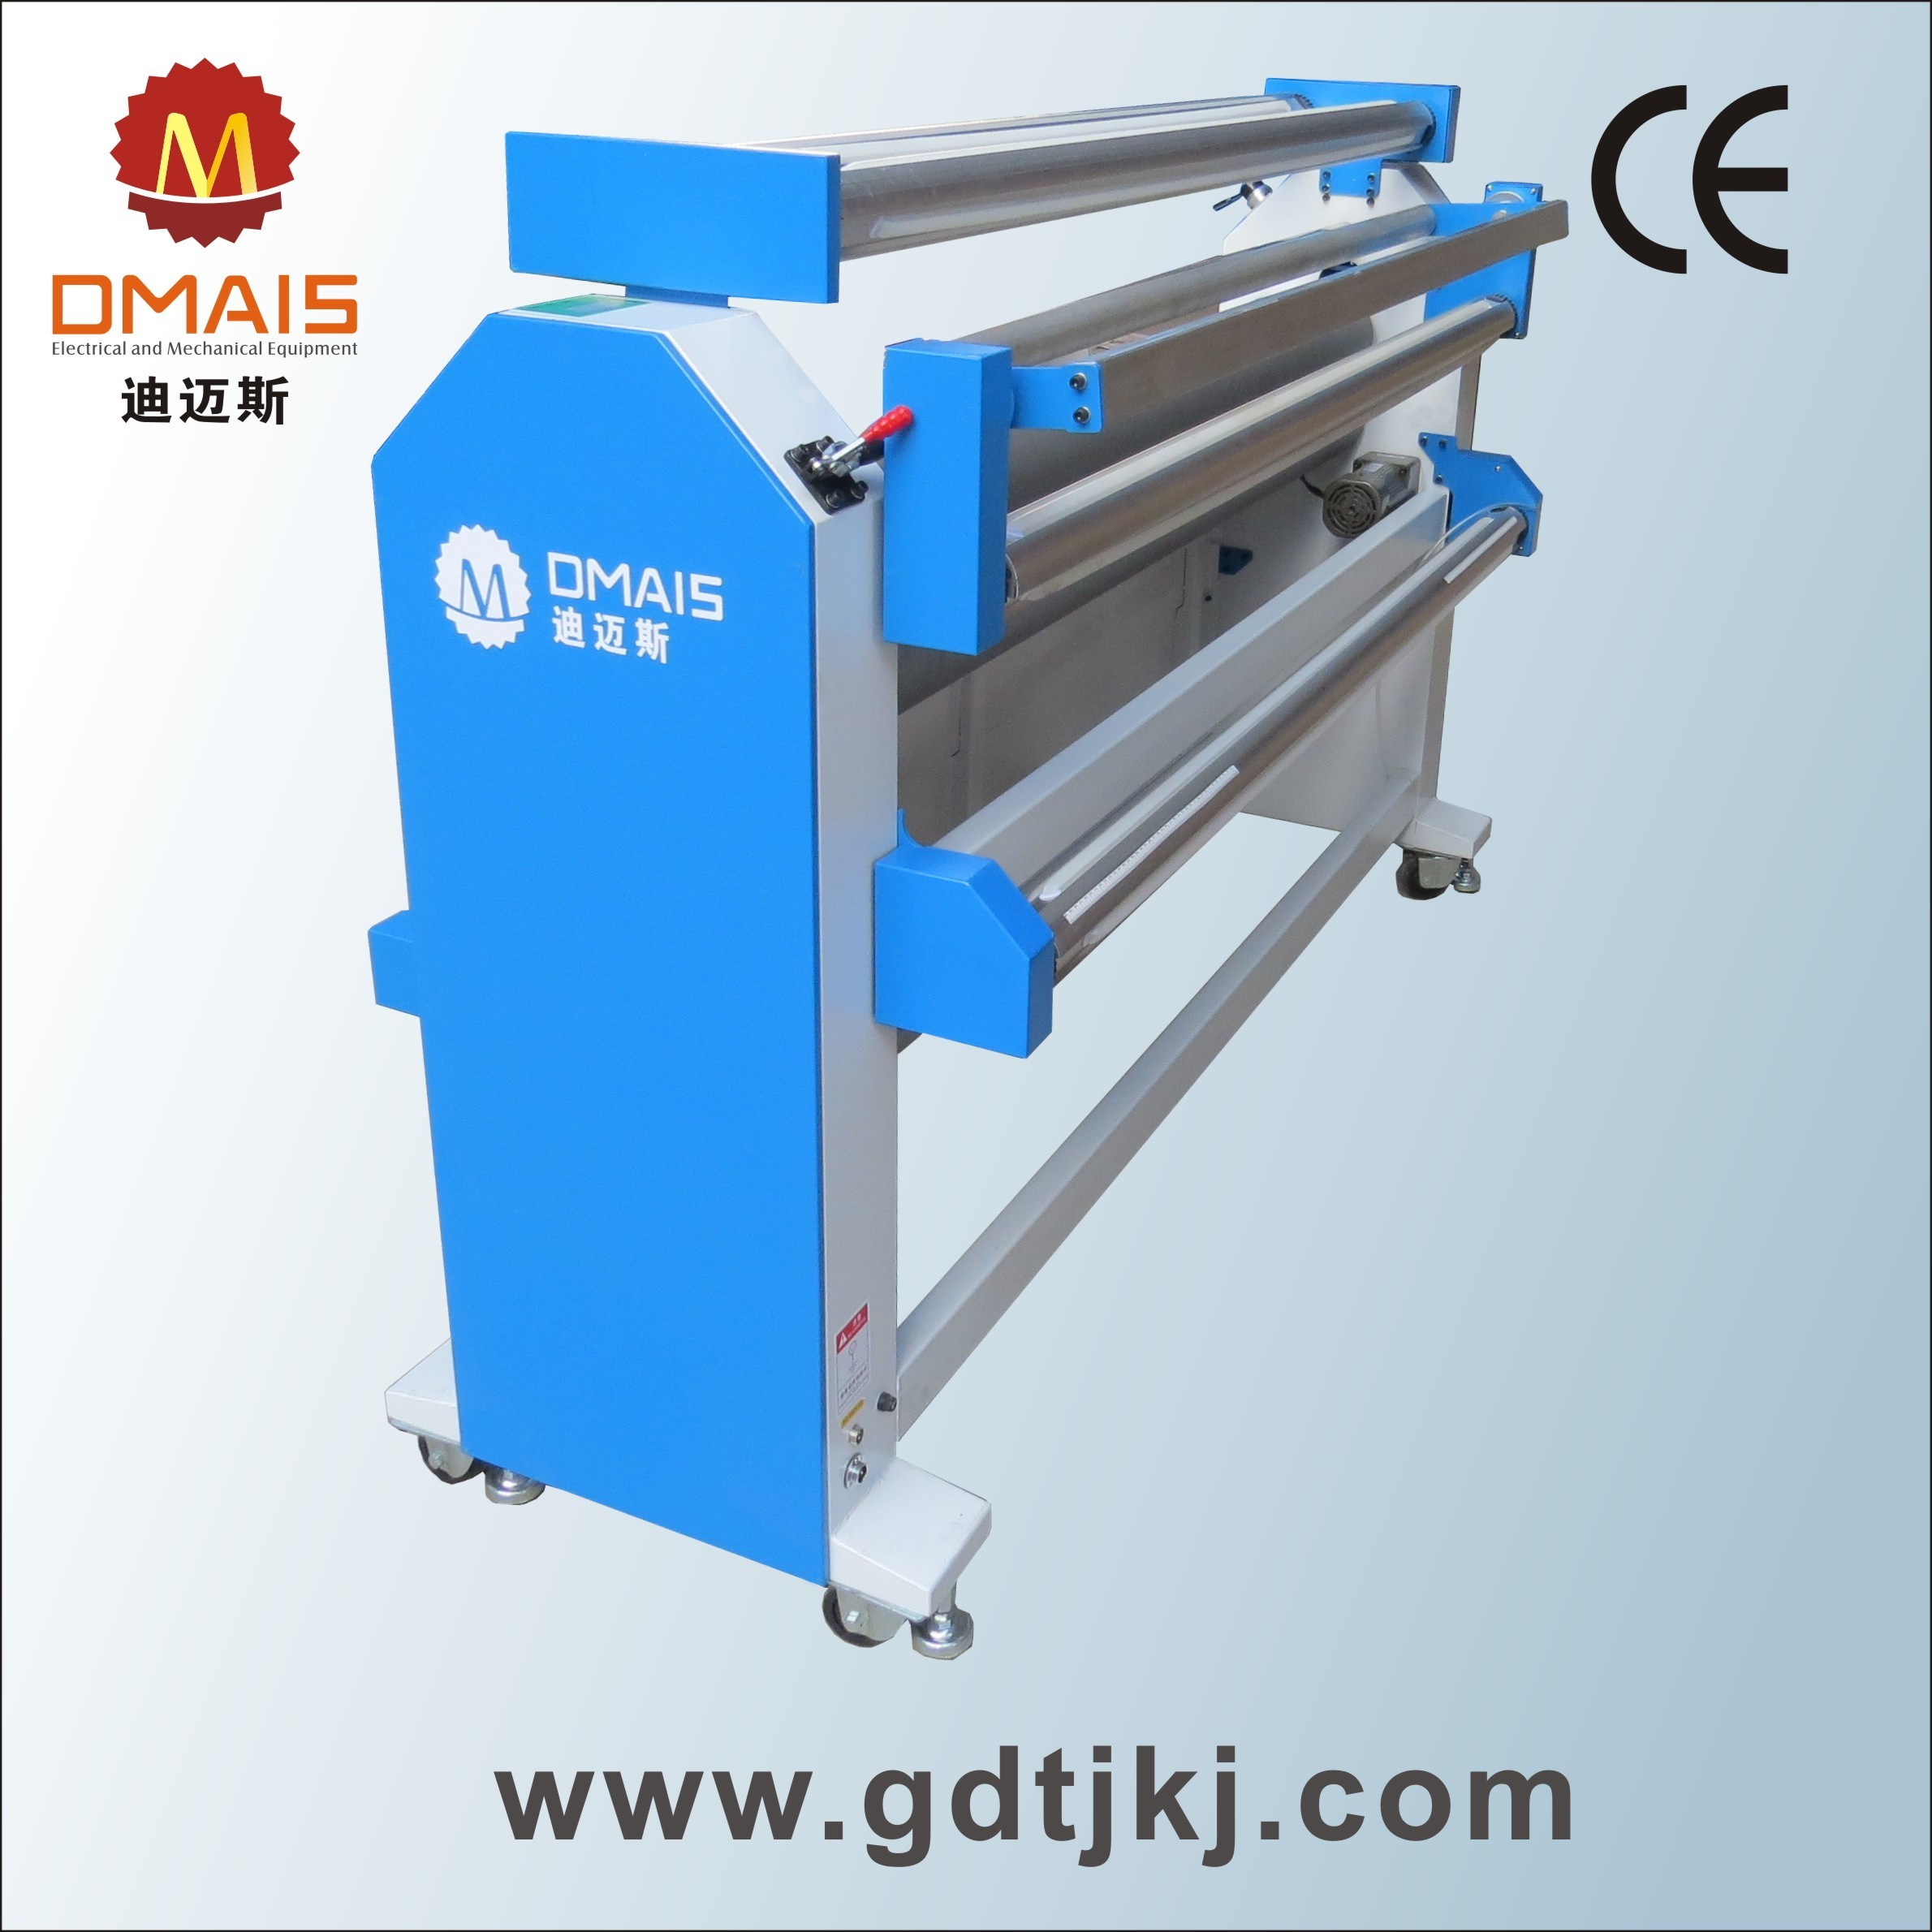 """Dmais 1.6m (63"""") Wide Format Laminator with Cutting"""